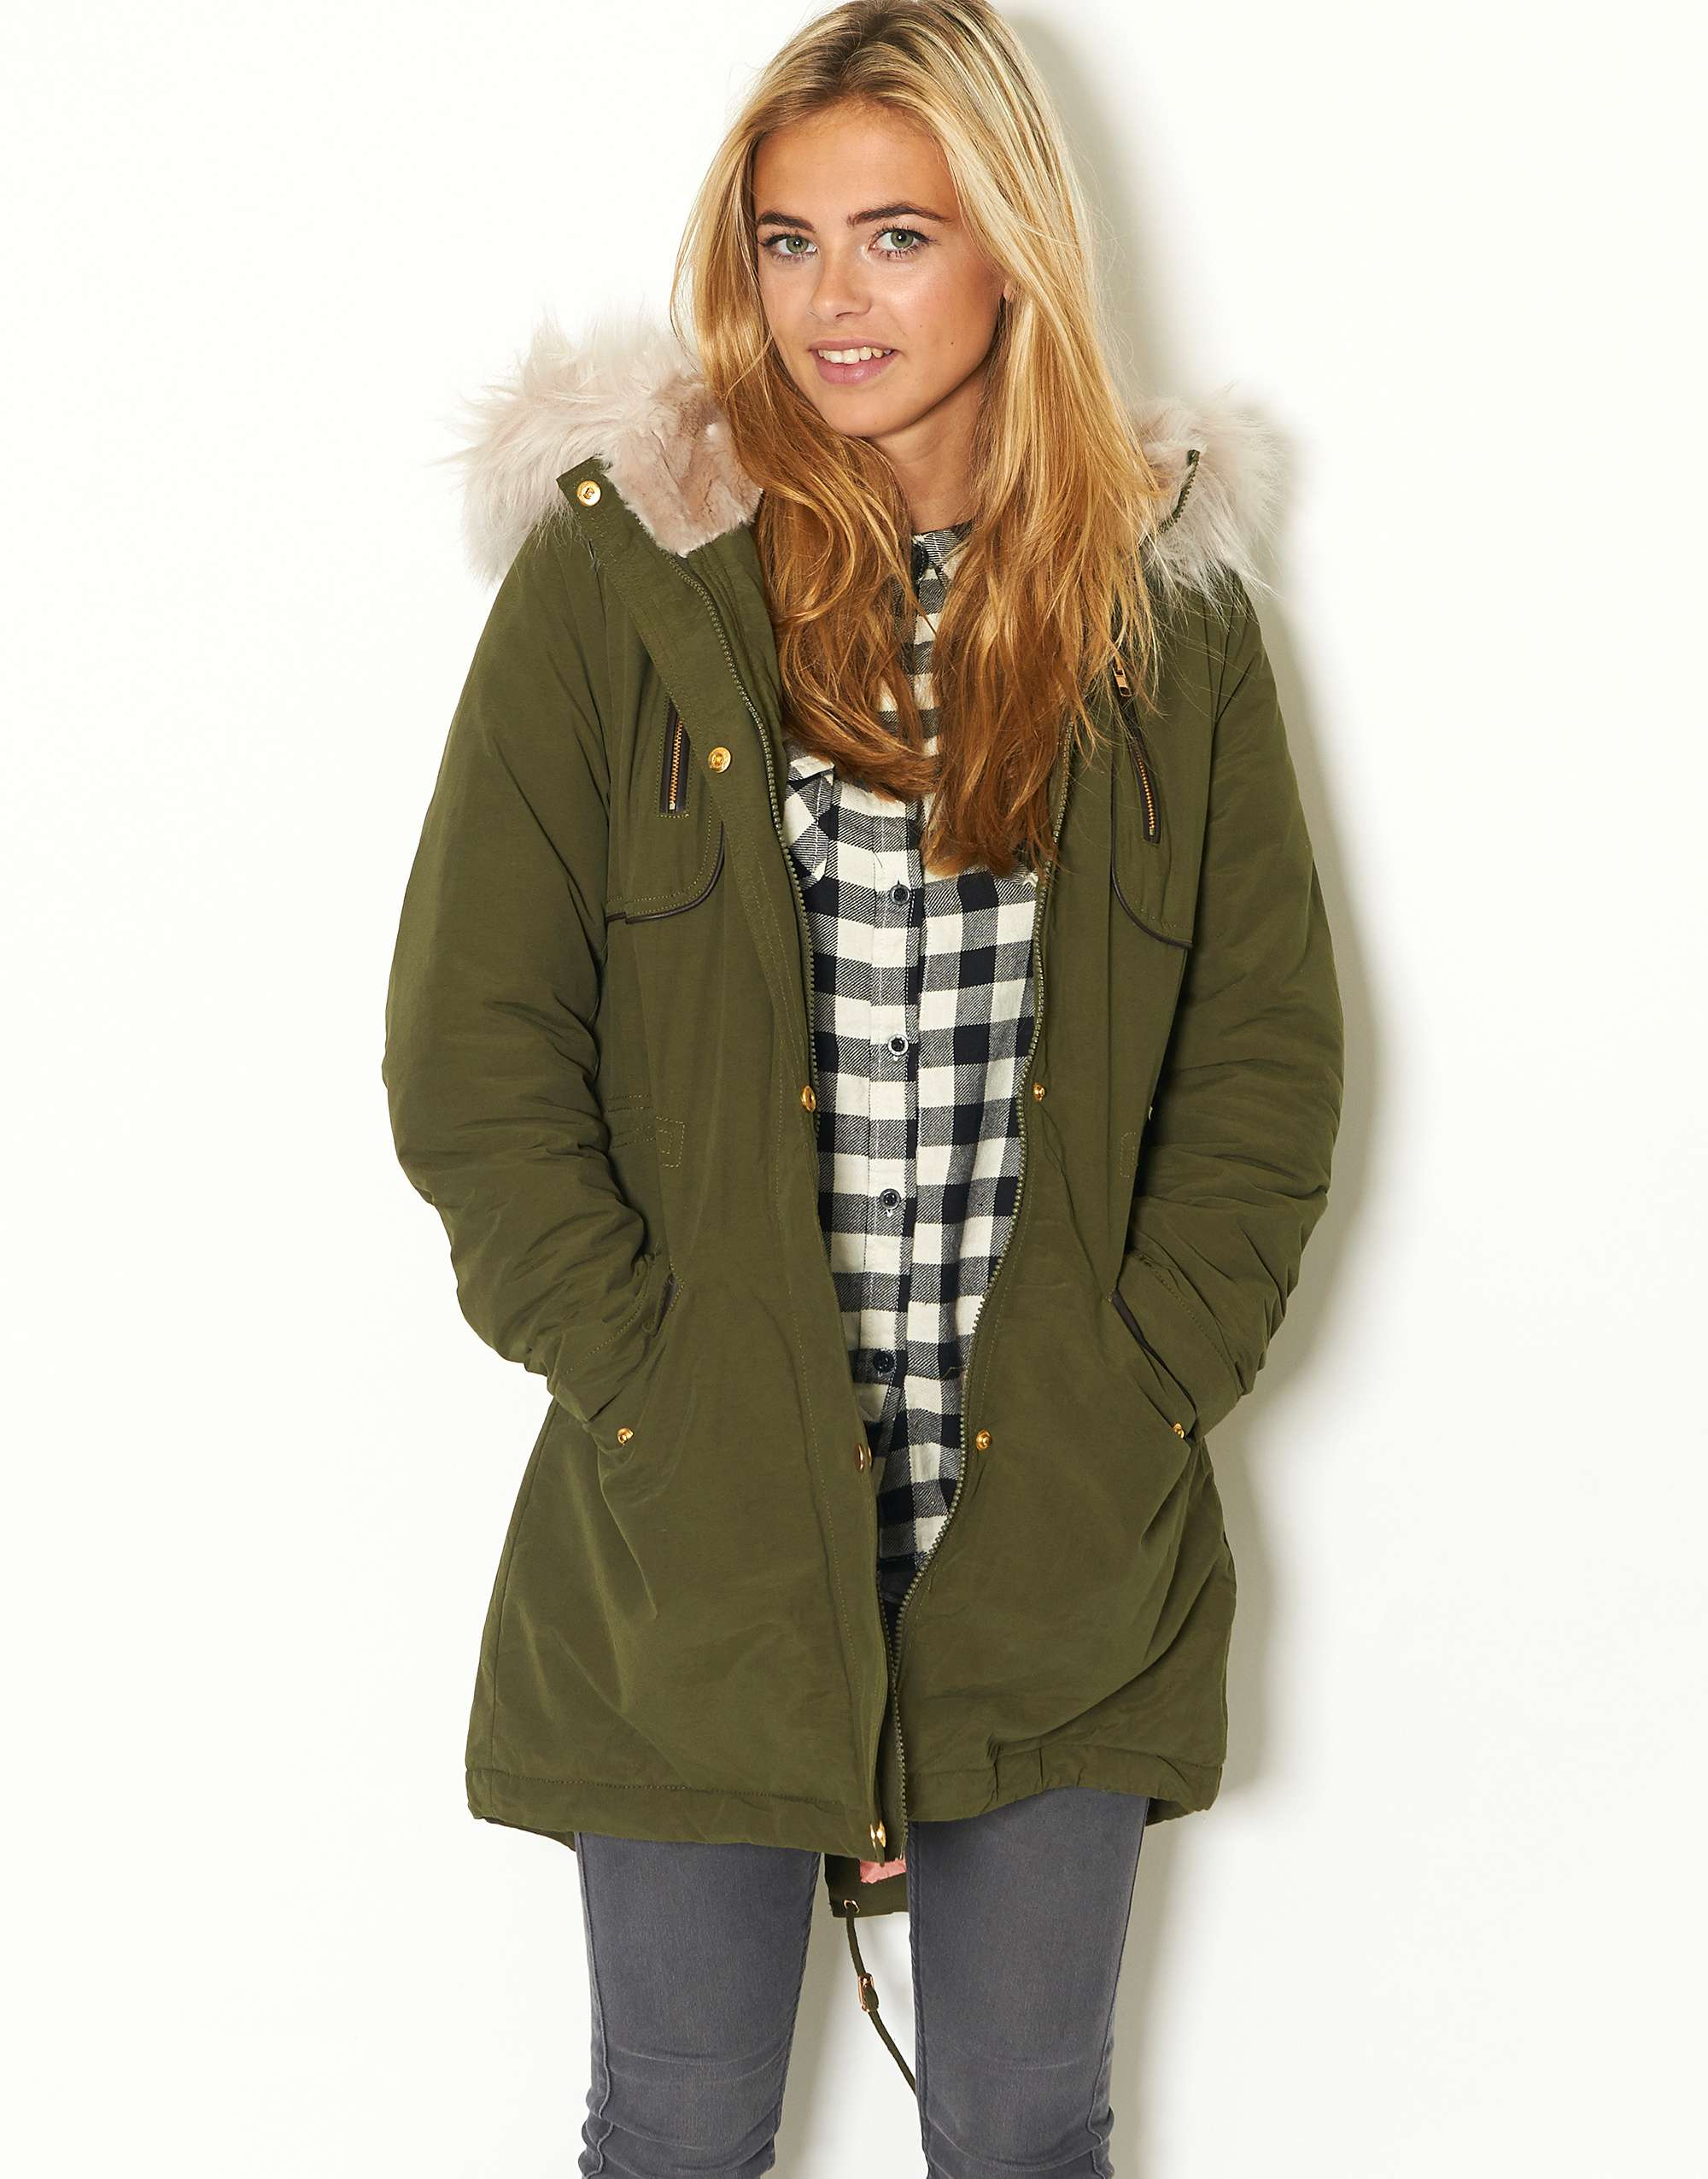 Winter Coat Green Womans - House of Fraser